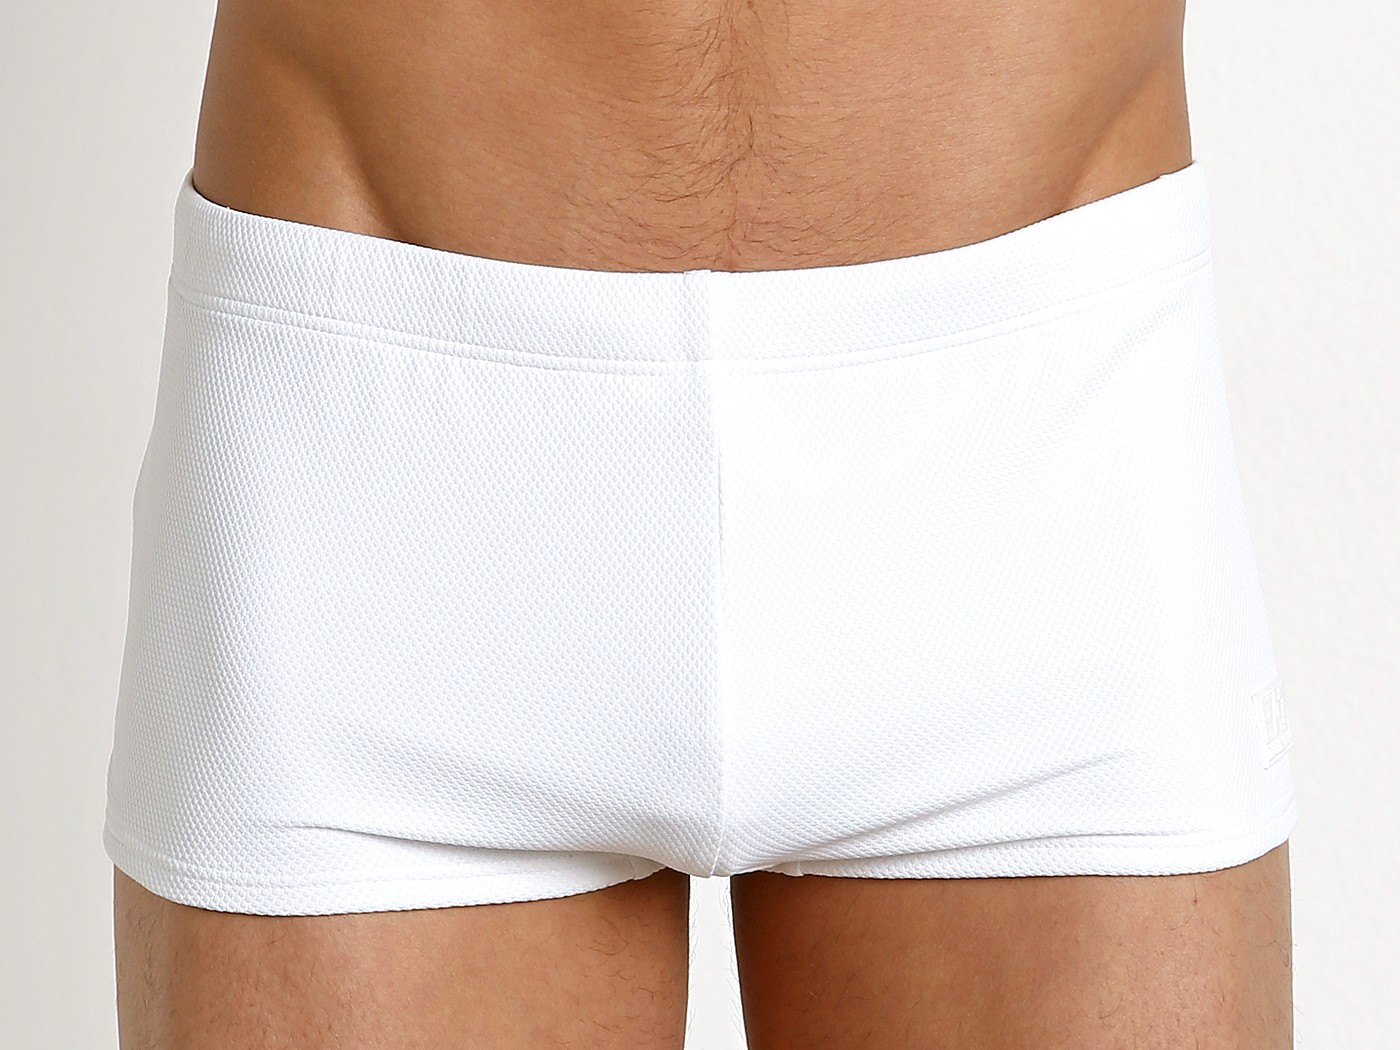 cd1b5c09f9 Emporio Armani Core Lux Swim Trunk White 901001-7P703-00010 at International  Jock